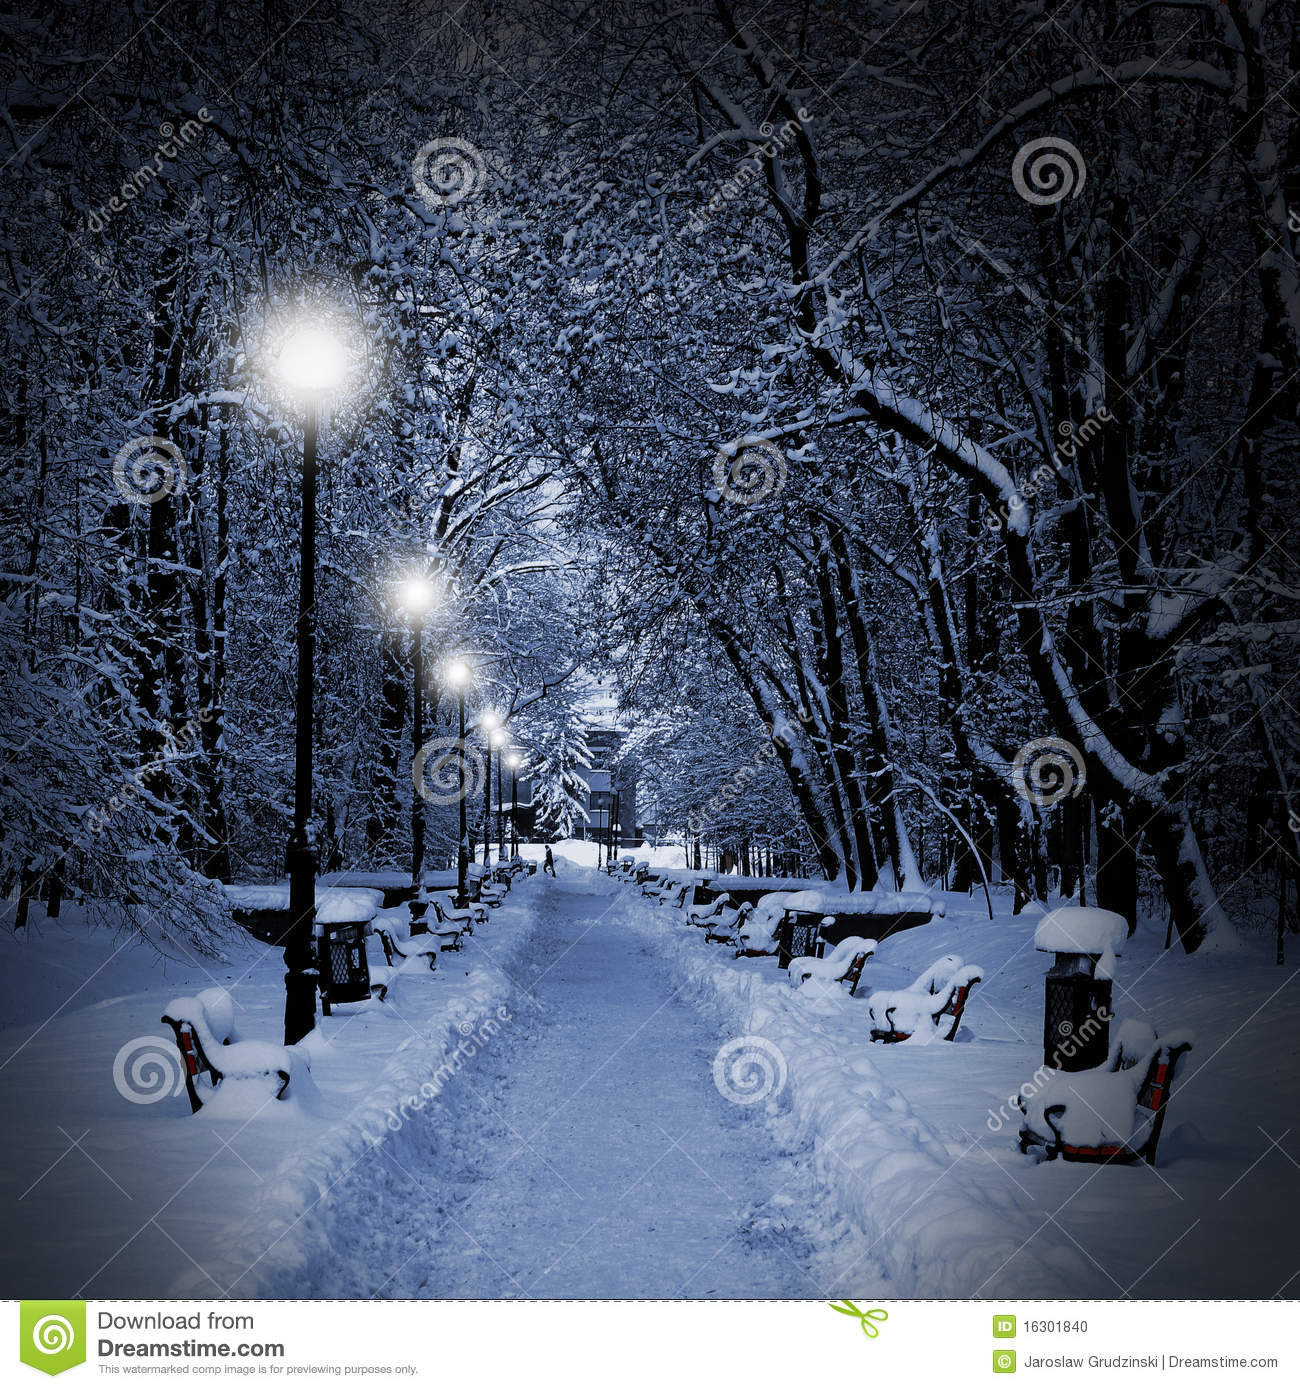 4k Laptop Wallpaper Fall Forest Park Covered With Snow At Night Stock Photo Image 16301840